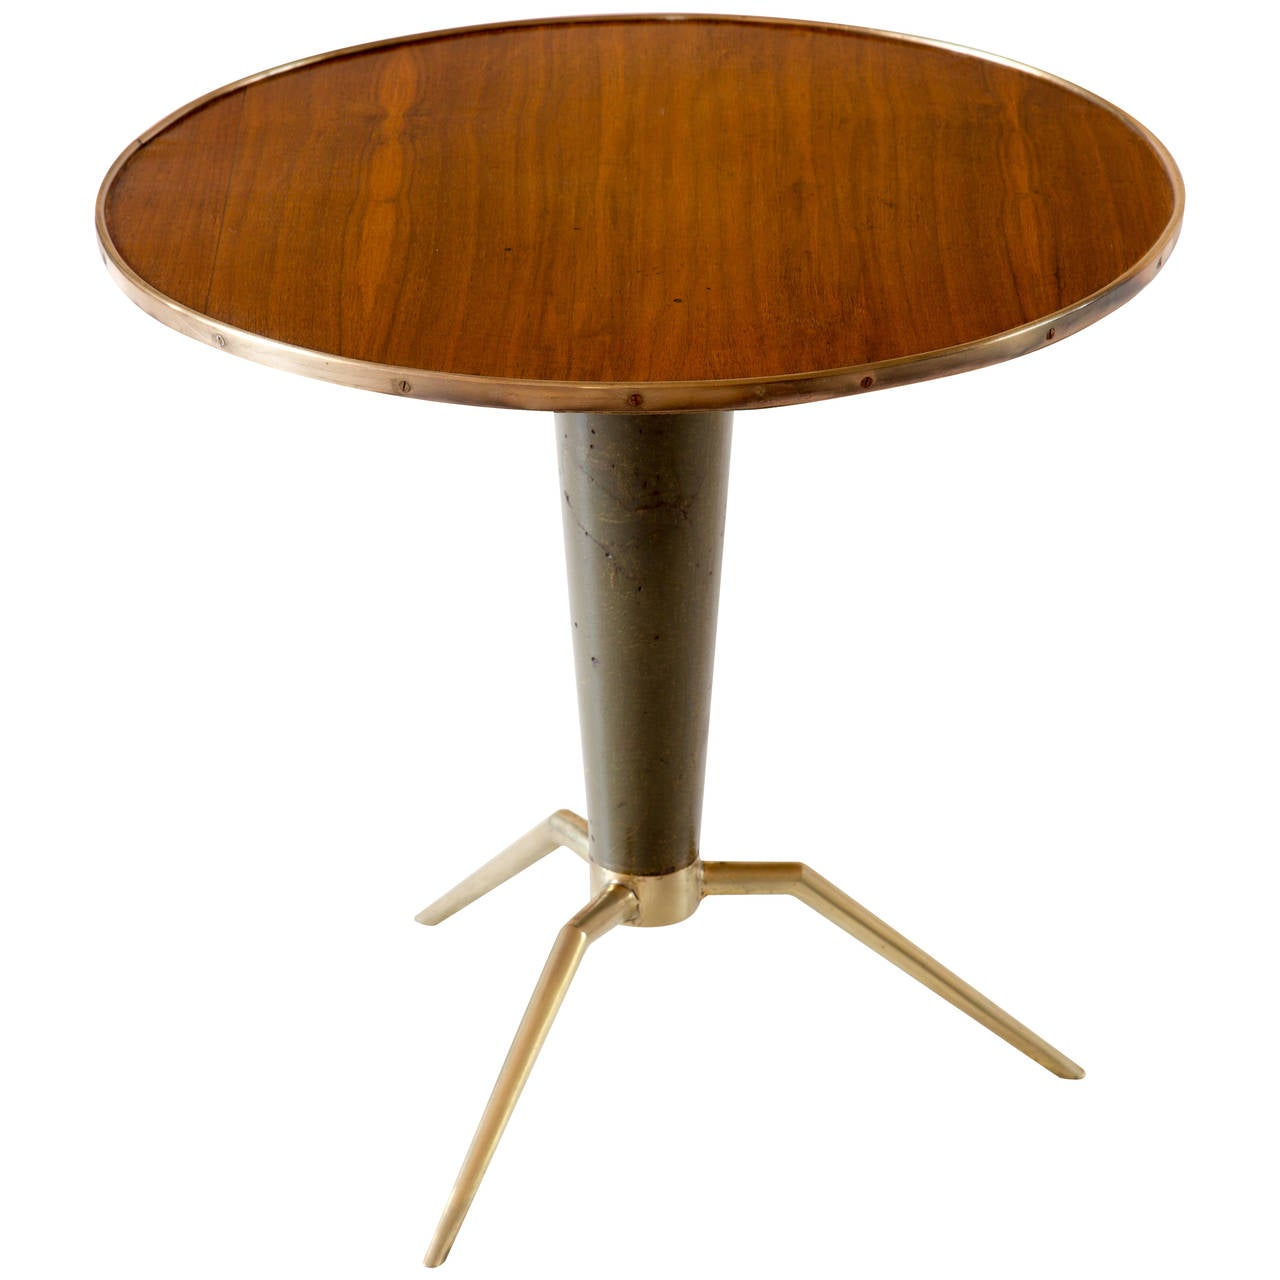 Melchiorre Bega Attributed Organic Coffee Table For Sale At 1stdibs